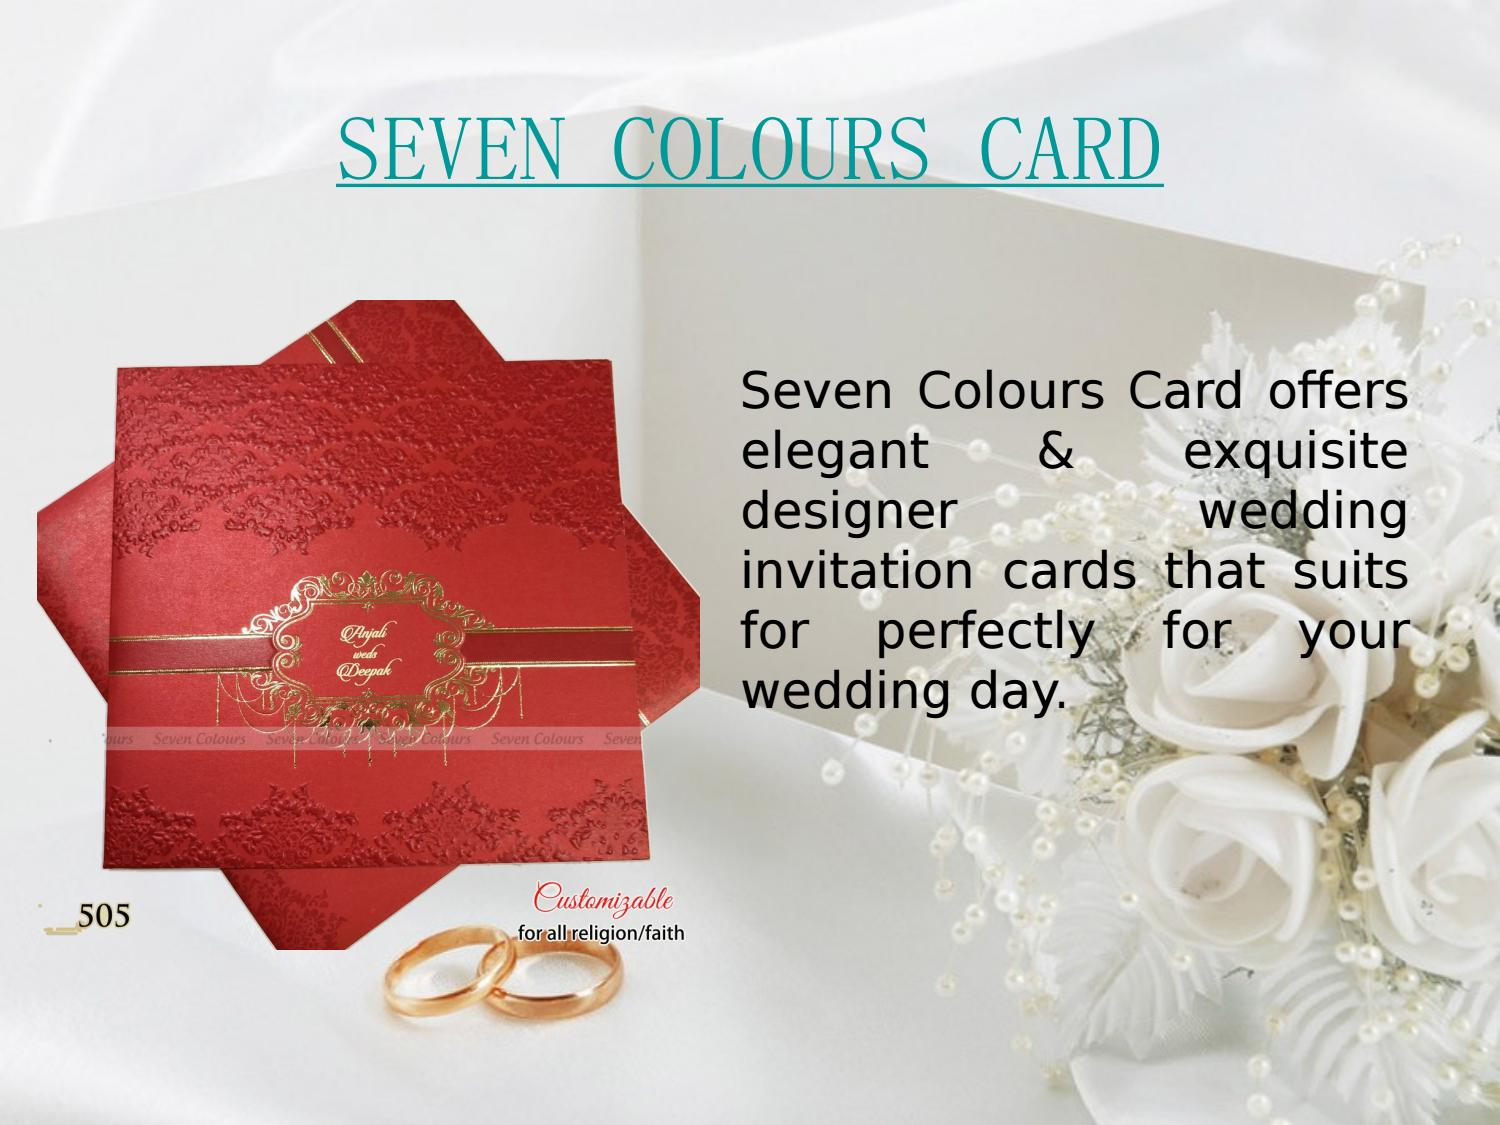 Designer Wedding Invitations Collection by Seven Colours Card - issuu